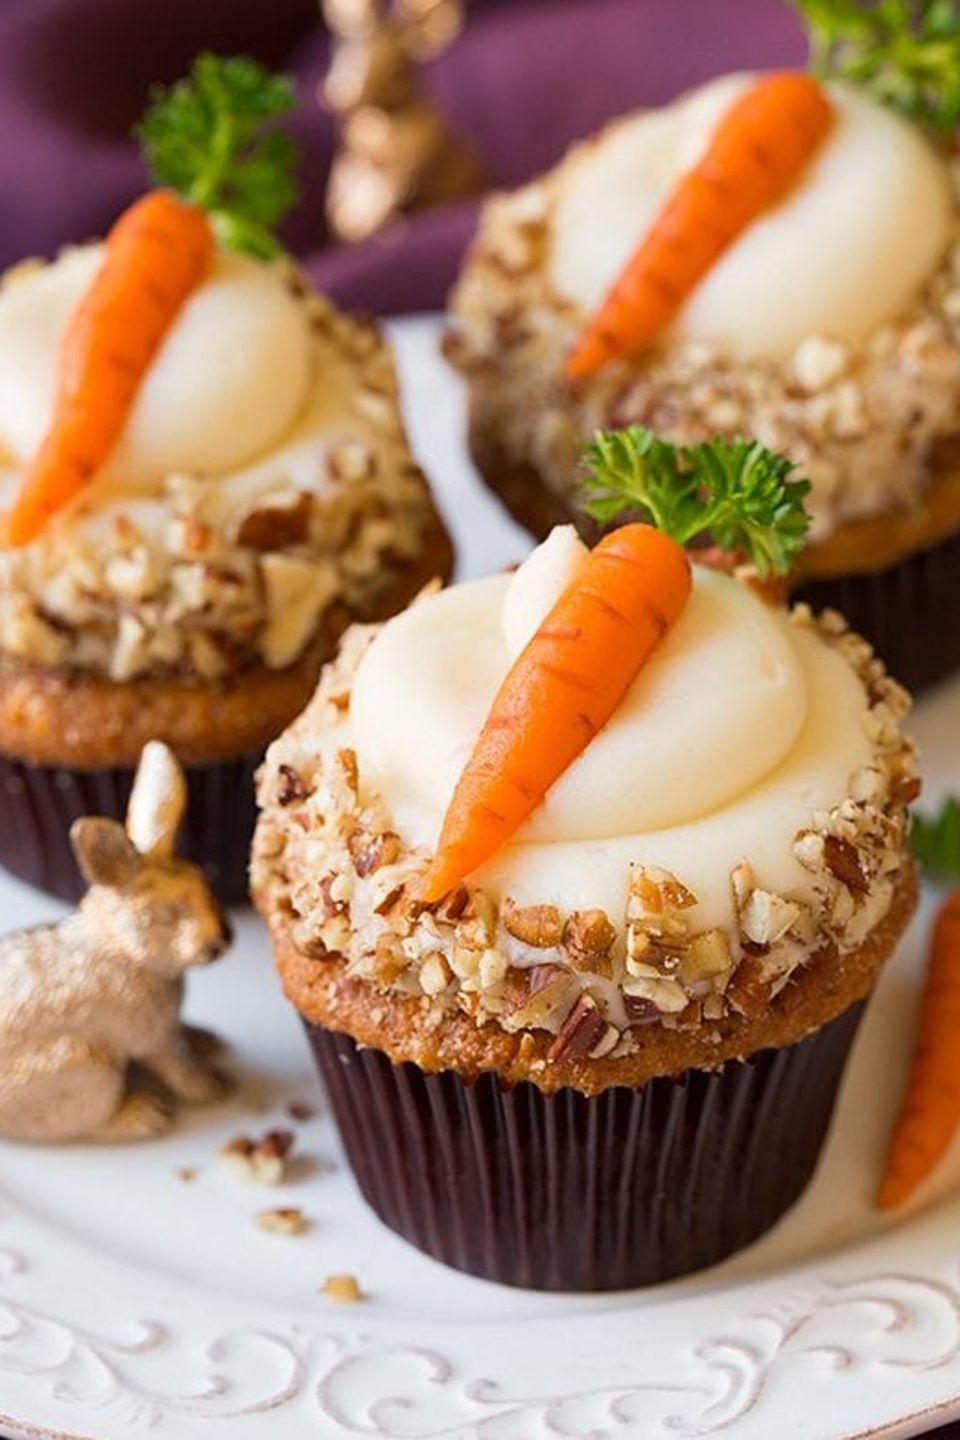 """<p>Although they look real (look at that detail!), these carrot toppers are made with marzipan and parsley stems. That's one way to surprise your guests. </p><p>Get the full recipe from <a href=""""https://www.cookingclassy.com/carrot-cake-cupcakes-cream-cheese-frosting/"""" rel=""""nofollow noopener"""" target=""""_blank"""" data-ylk=""""slk:Cooking Classy"""" class=""""link rapid-noclick-resp"""">Cooking Classy</a> </p>"""